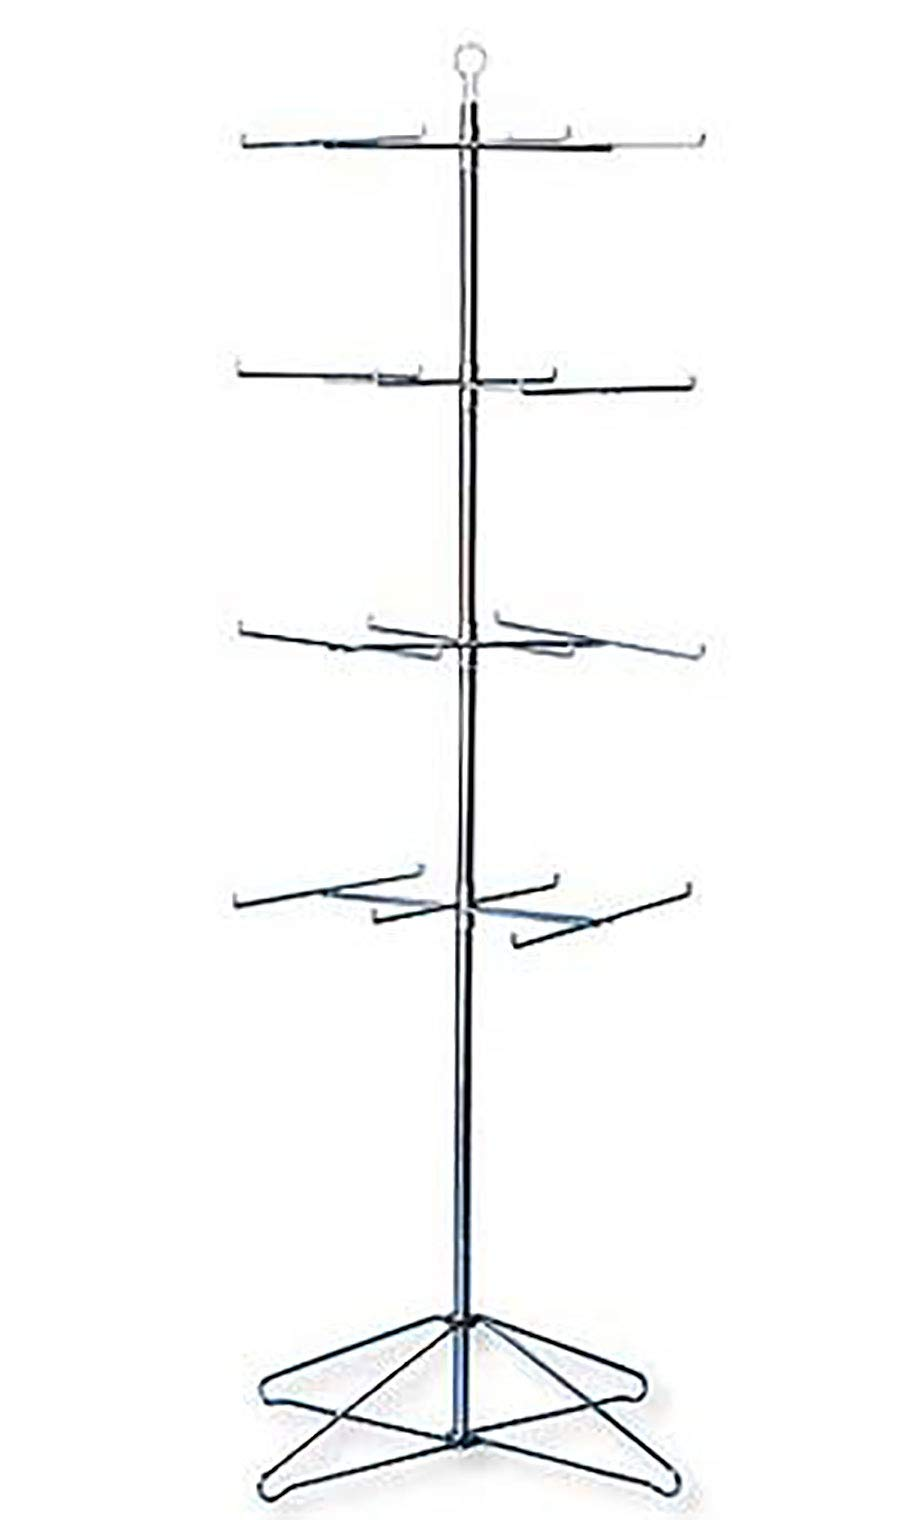 SSWBasics 4-Tier Chrome Wire Spinner Rack (6 Tiers - Space 12'' Apart)